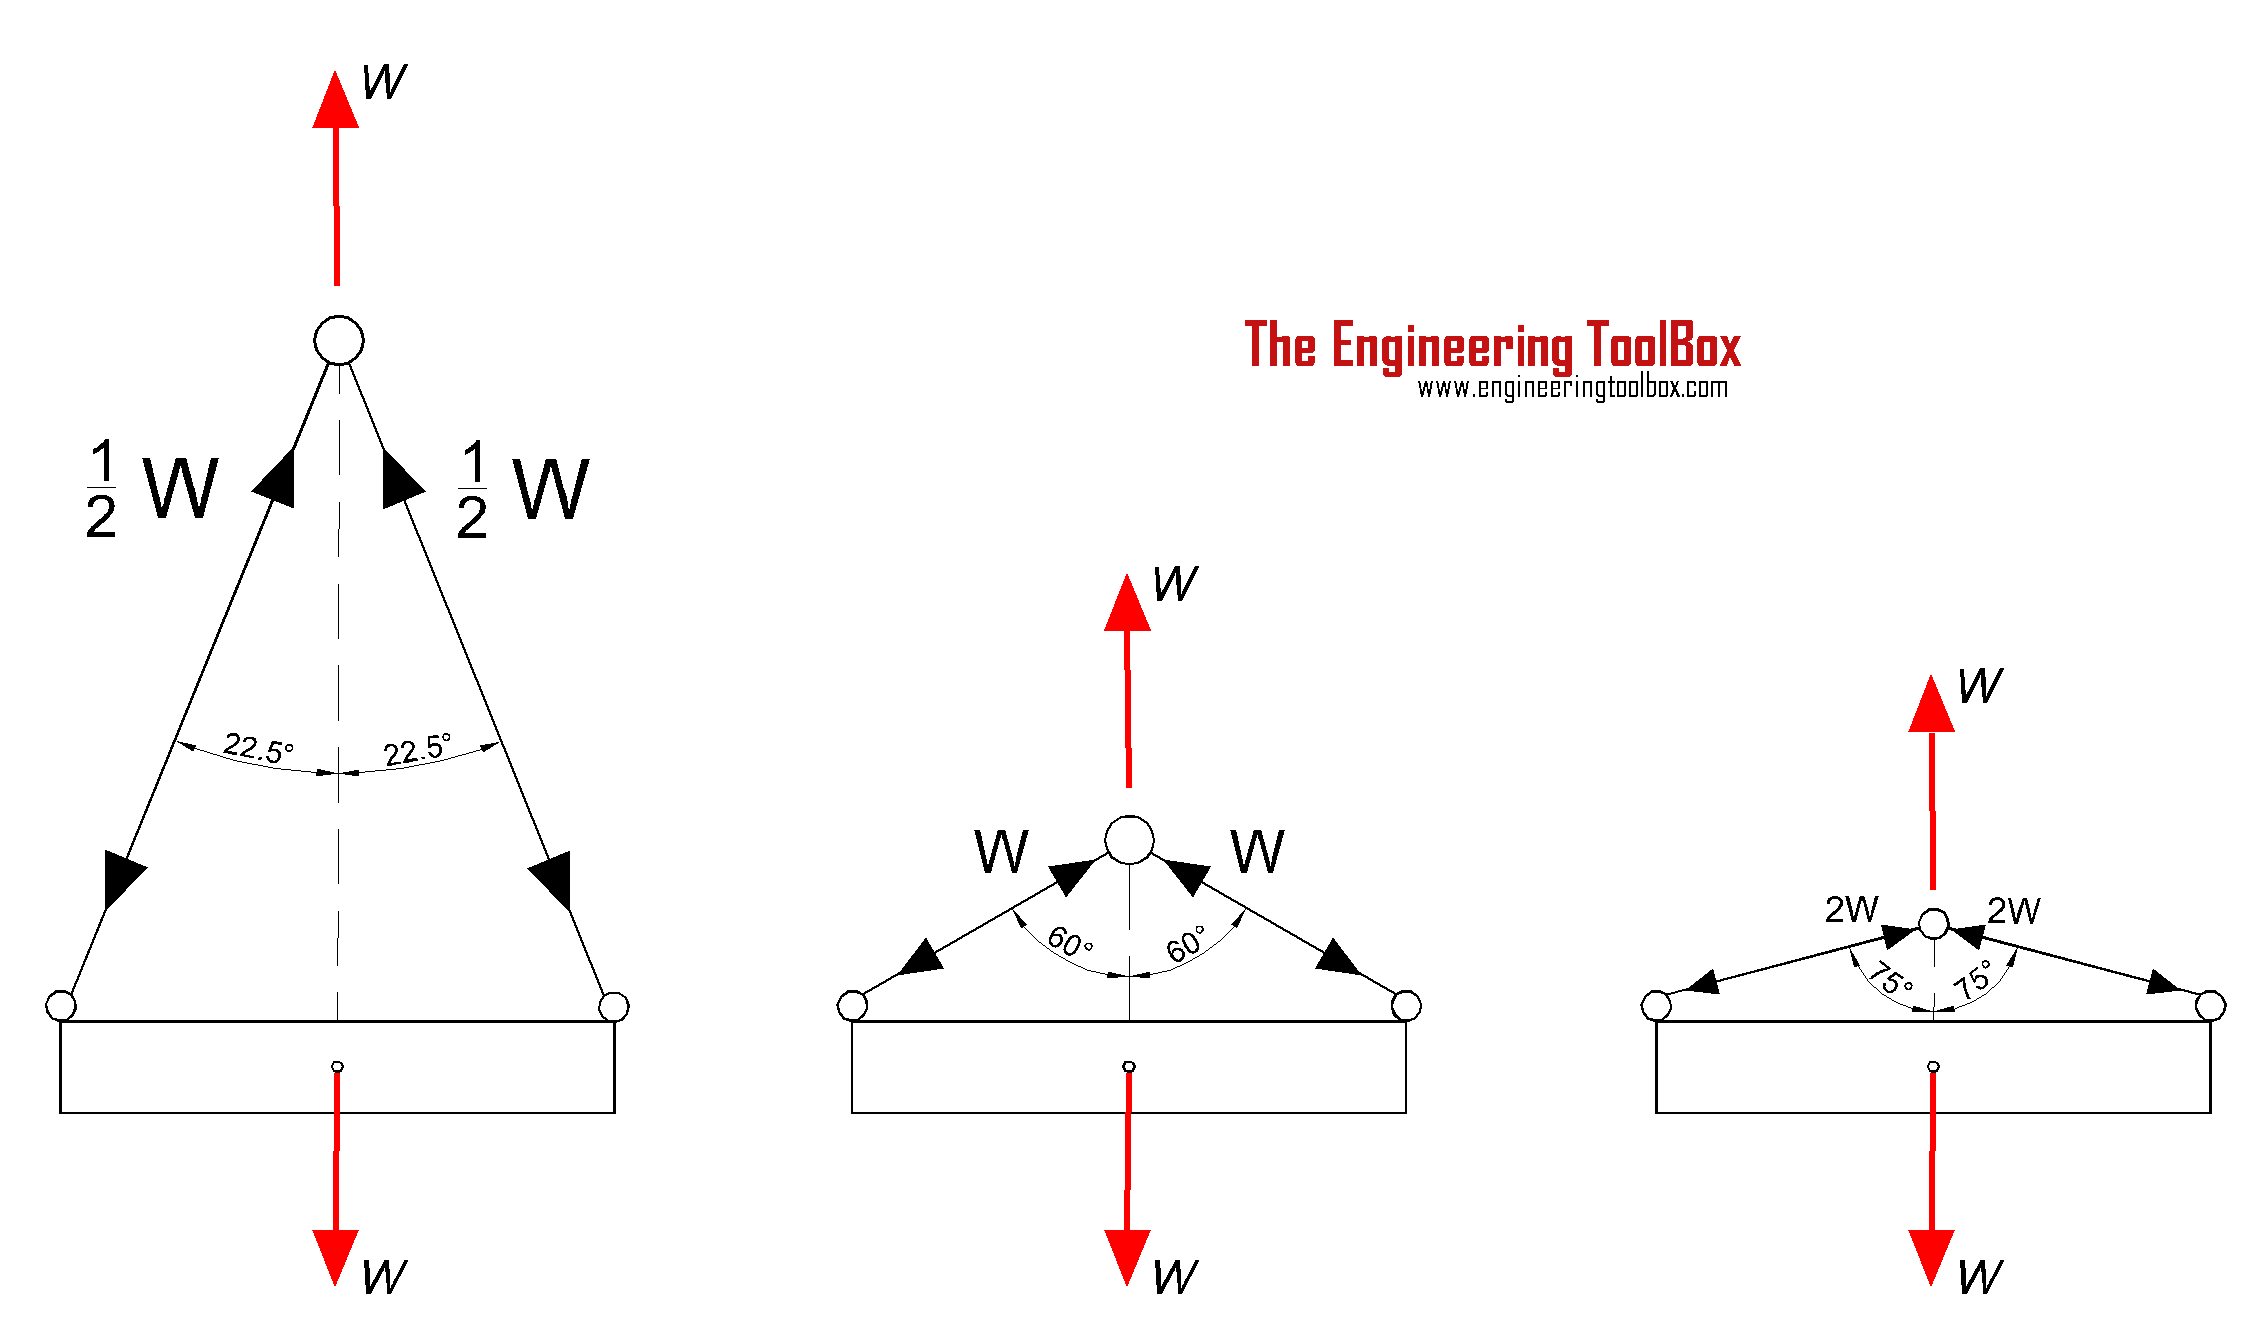 Wire rope slings - wire angle versus wire force